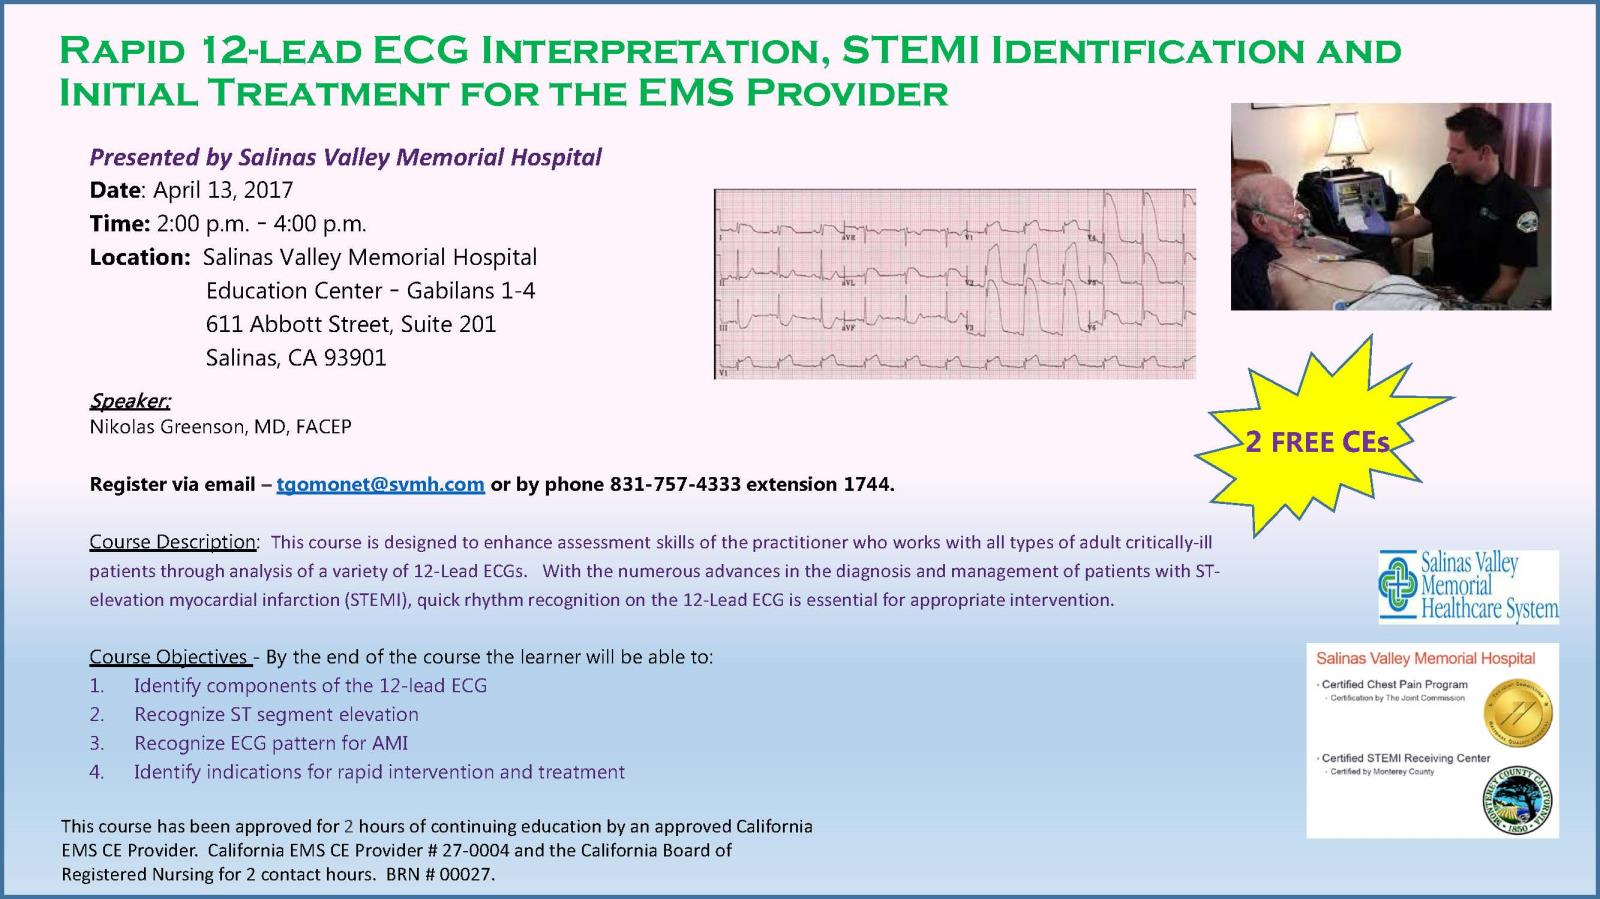 Rapid 12 Lead ECG Interpretation for the EMS Provider - April 13 2017